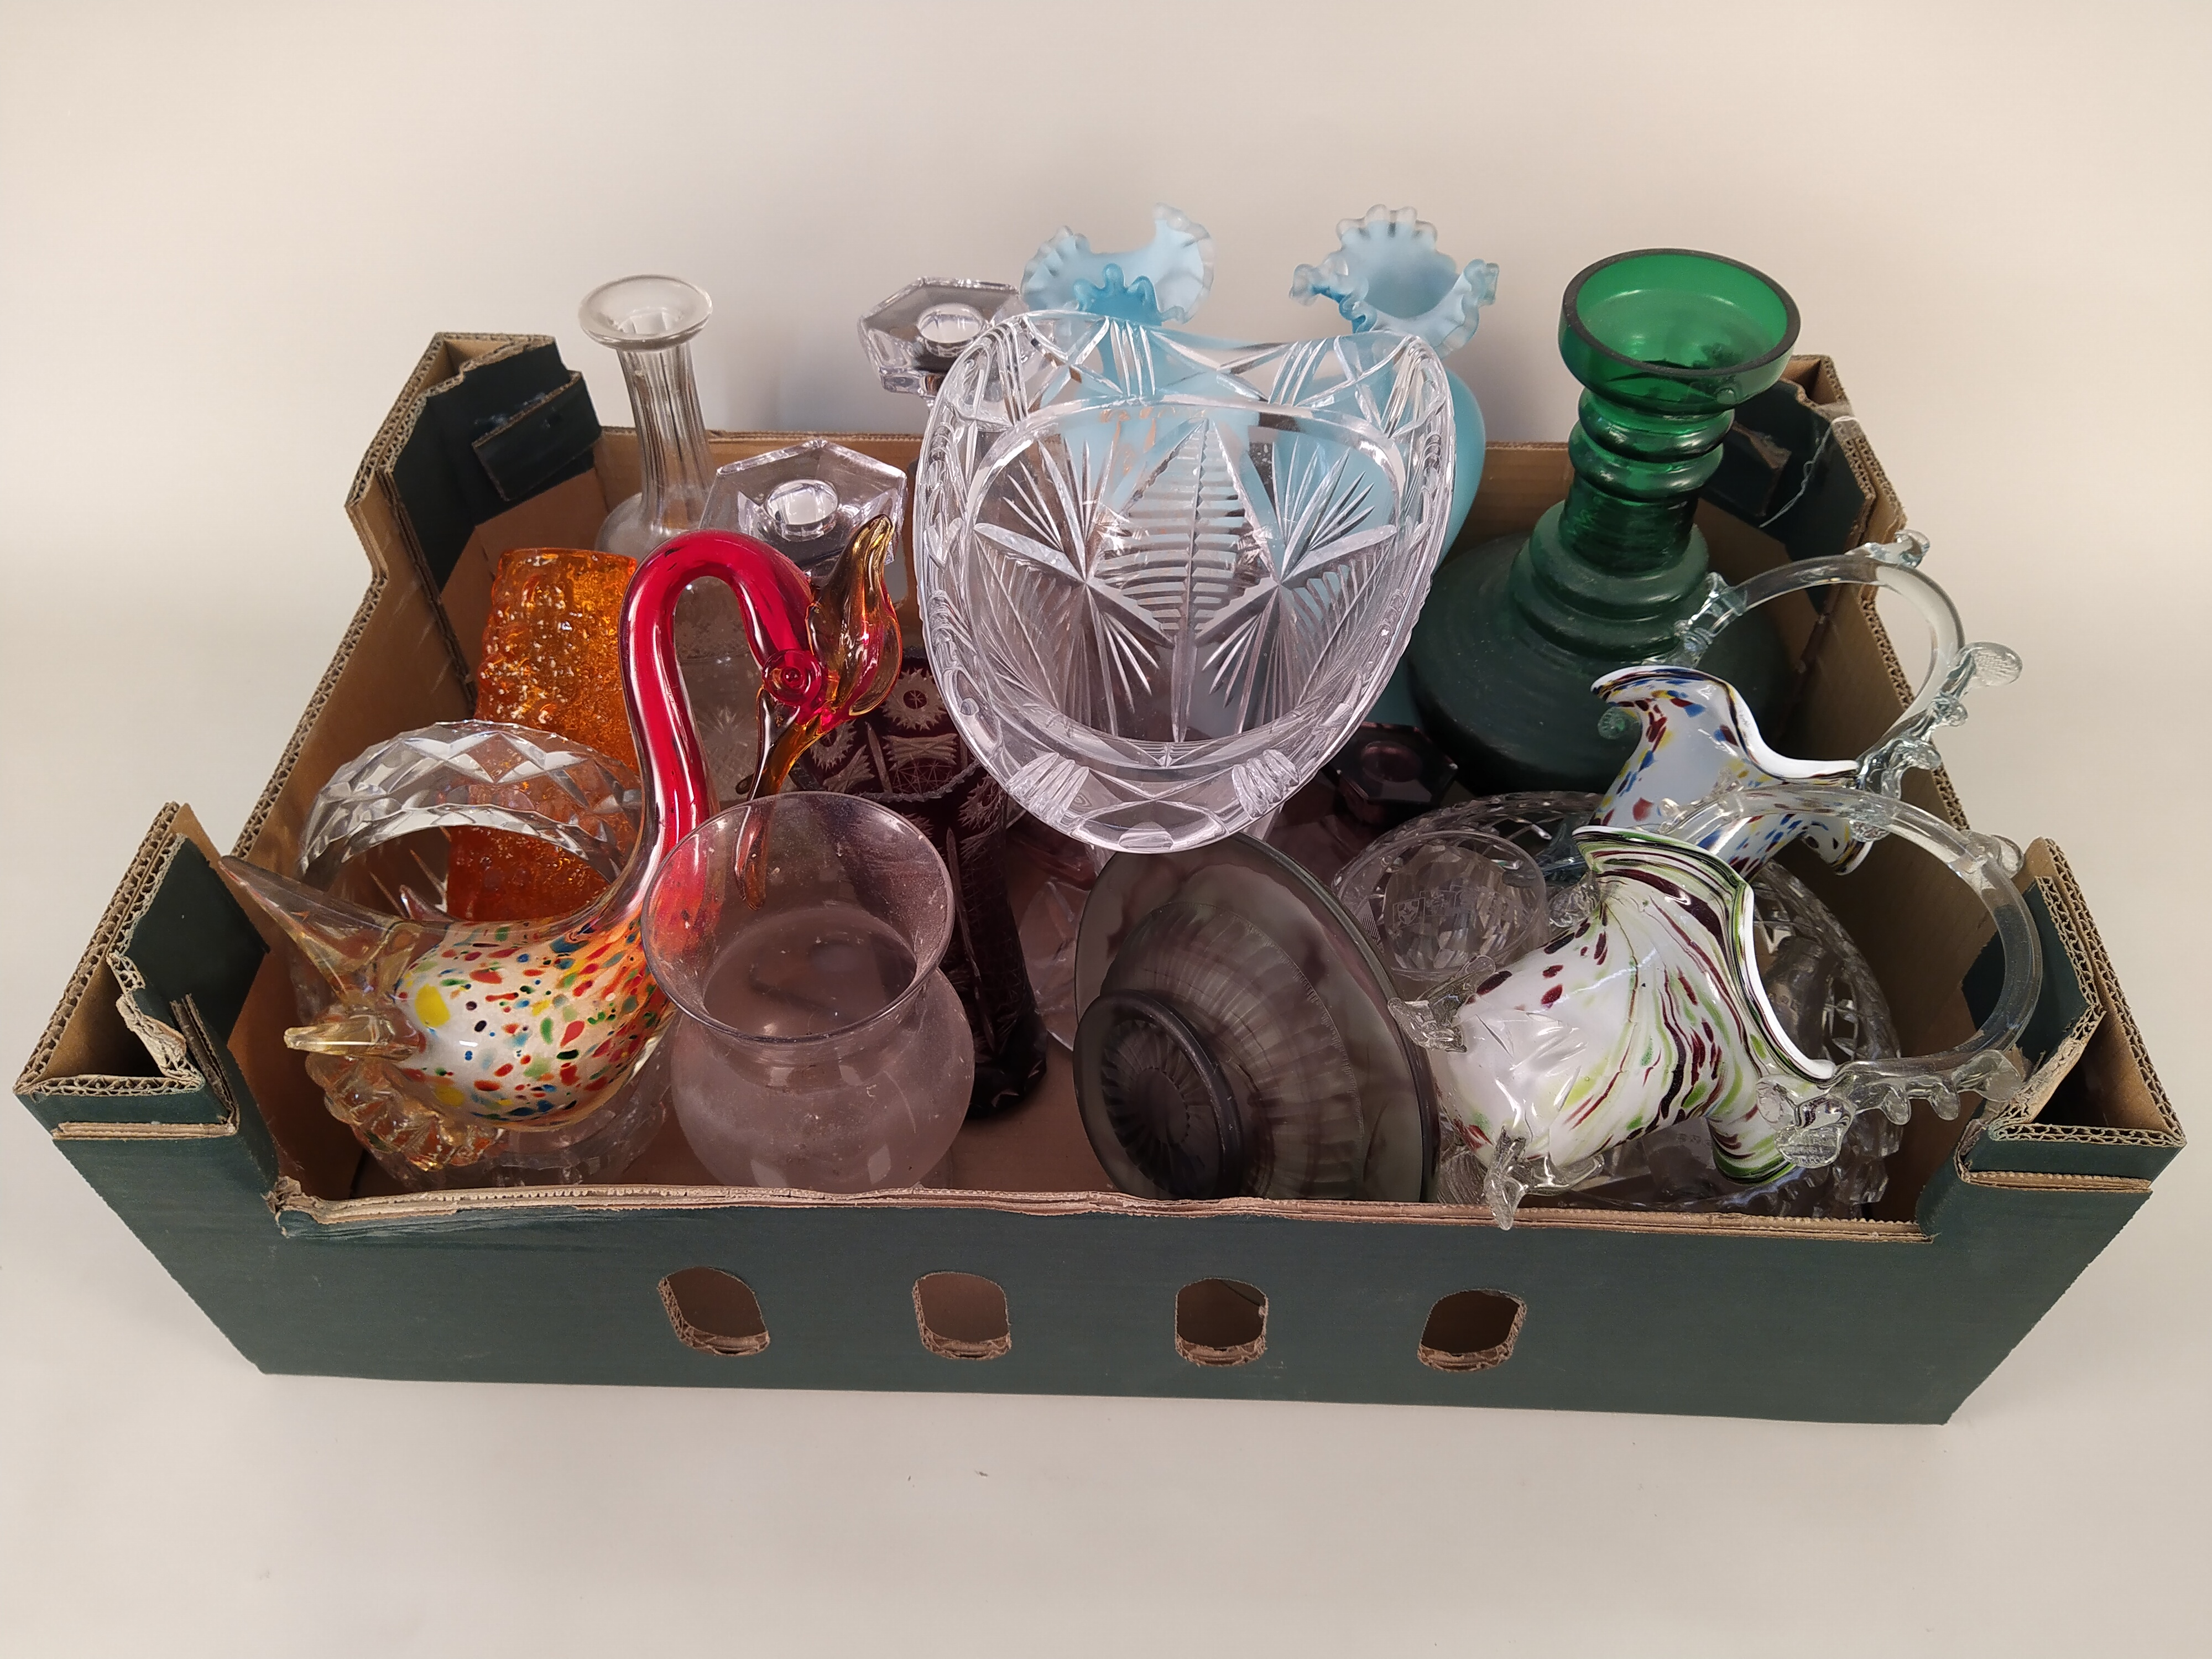 A selection of glassware including a large vase, coloured glass, - Image 3 of 3